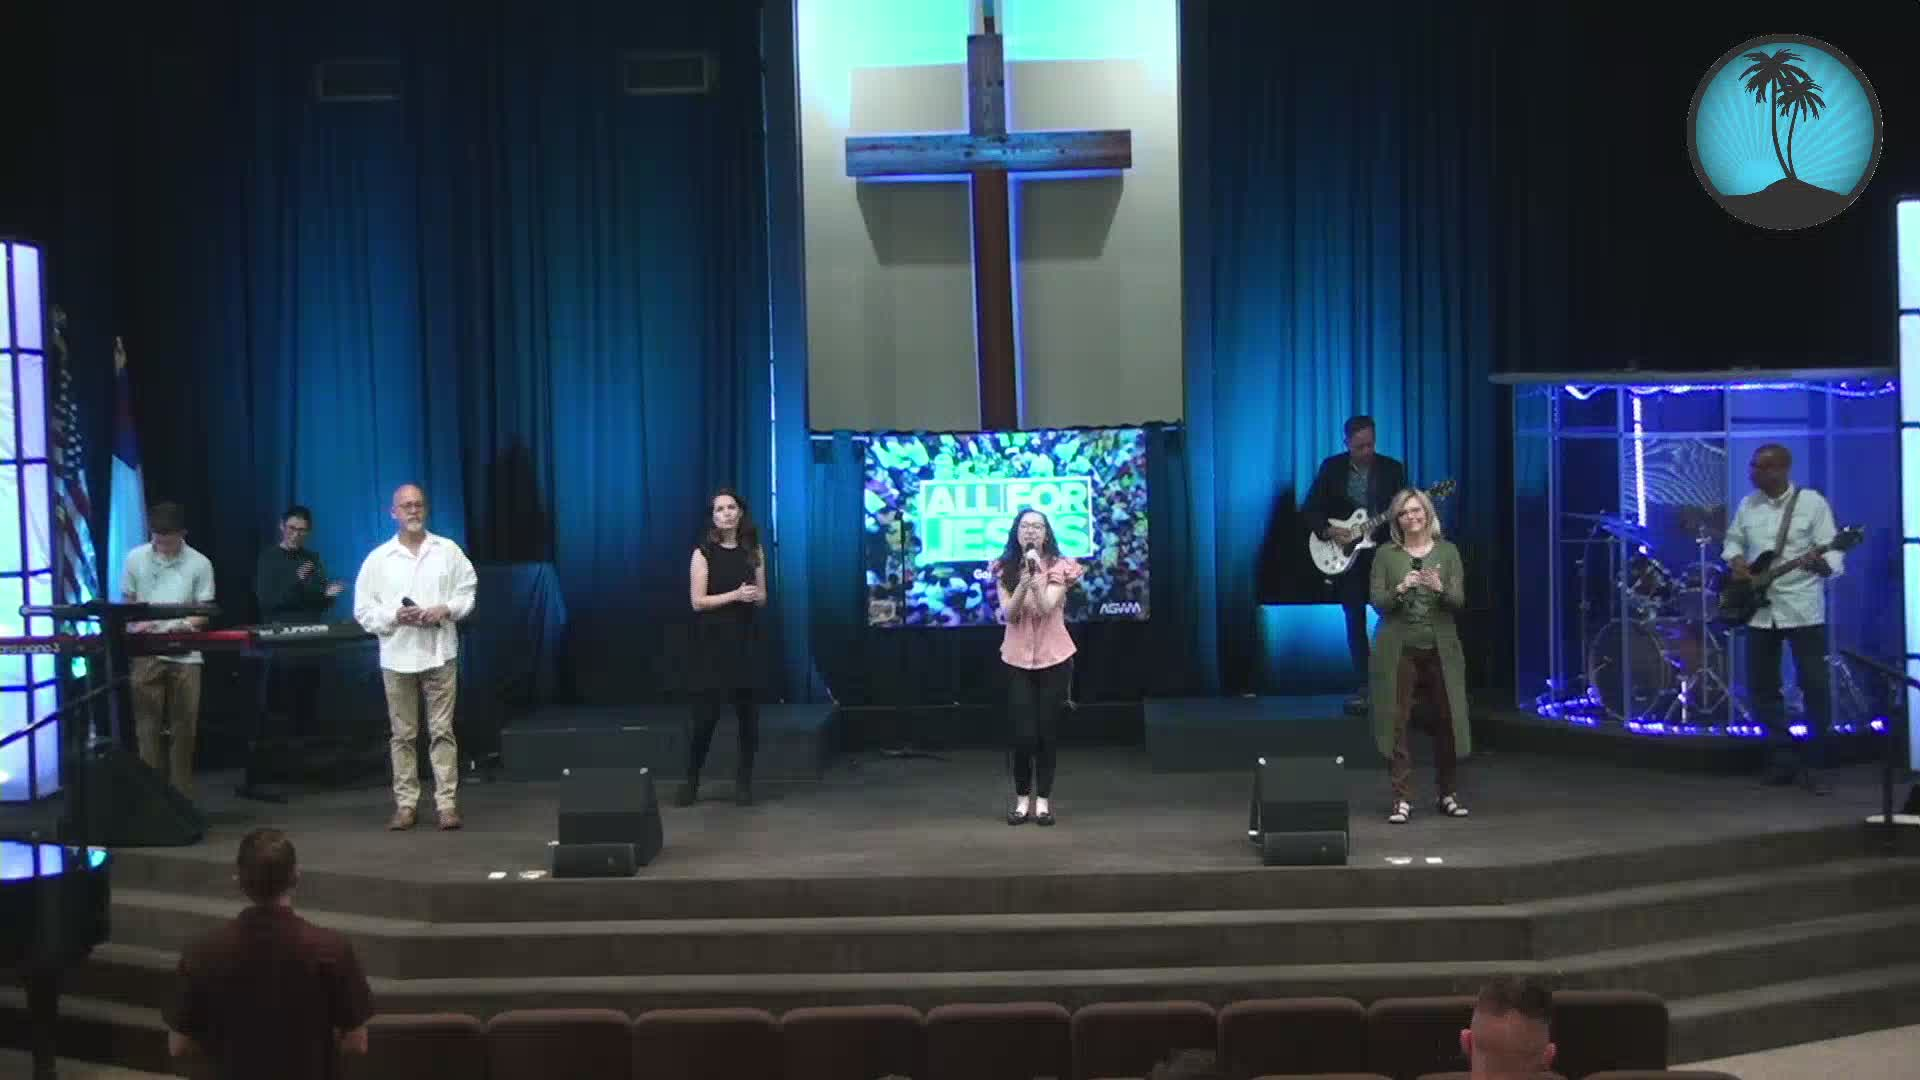 Sunday Morning - First Service